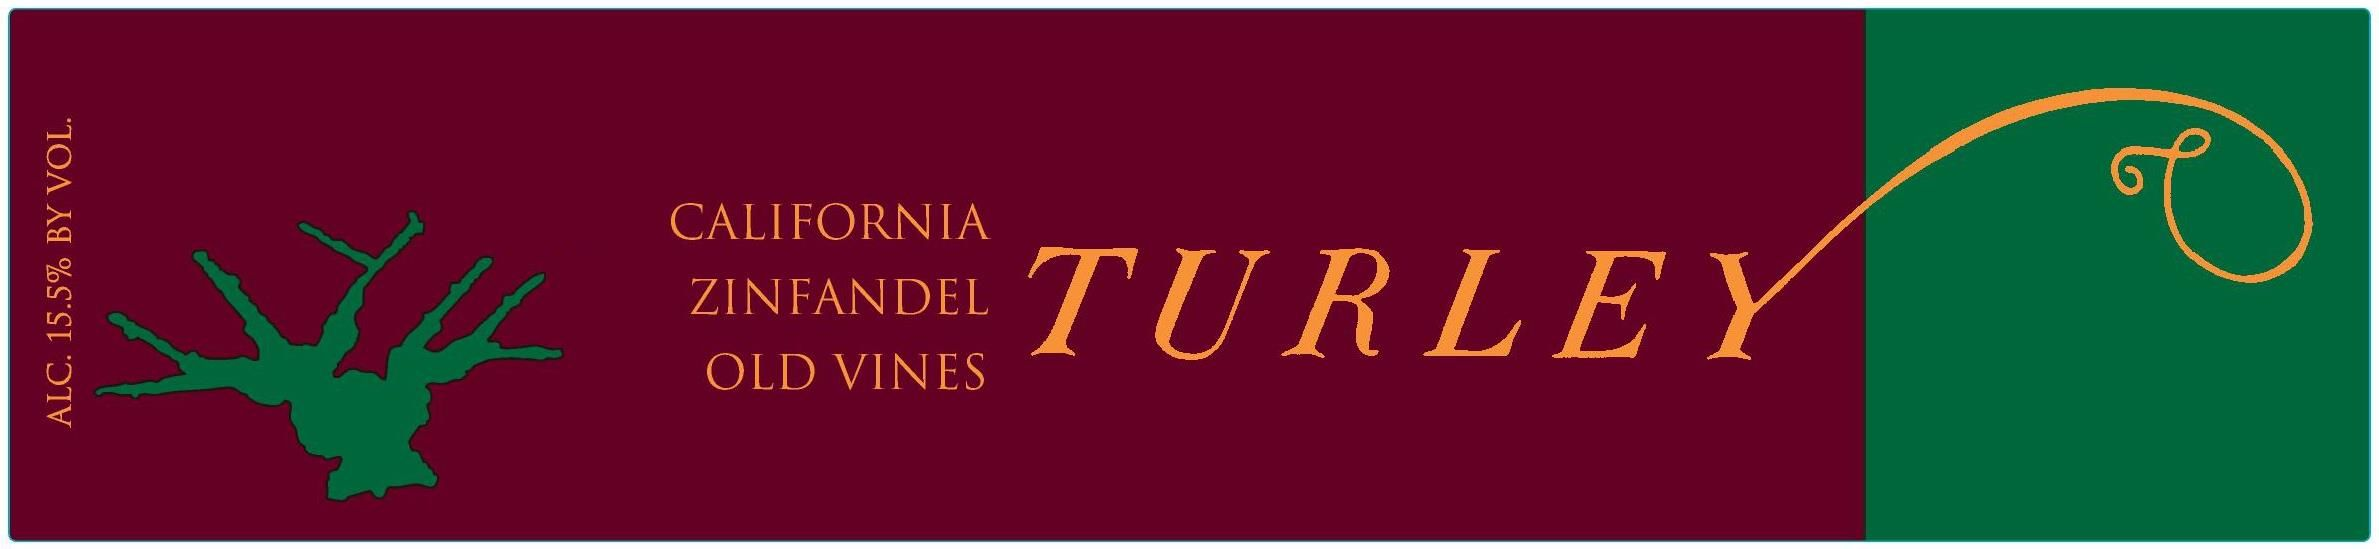 Turley Old Vines Zinfandel 2017  Front Label